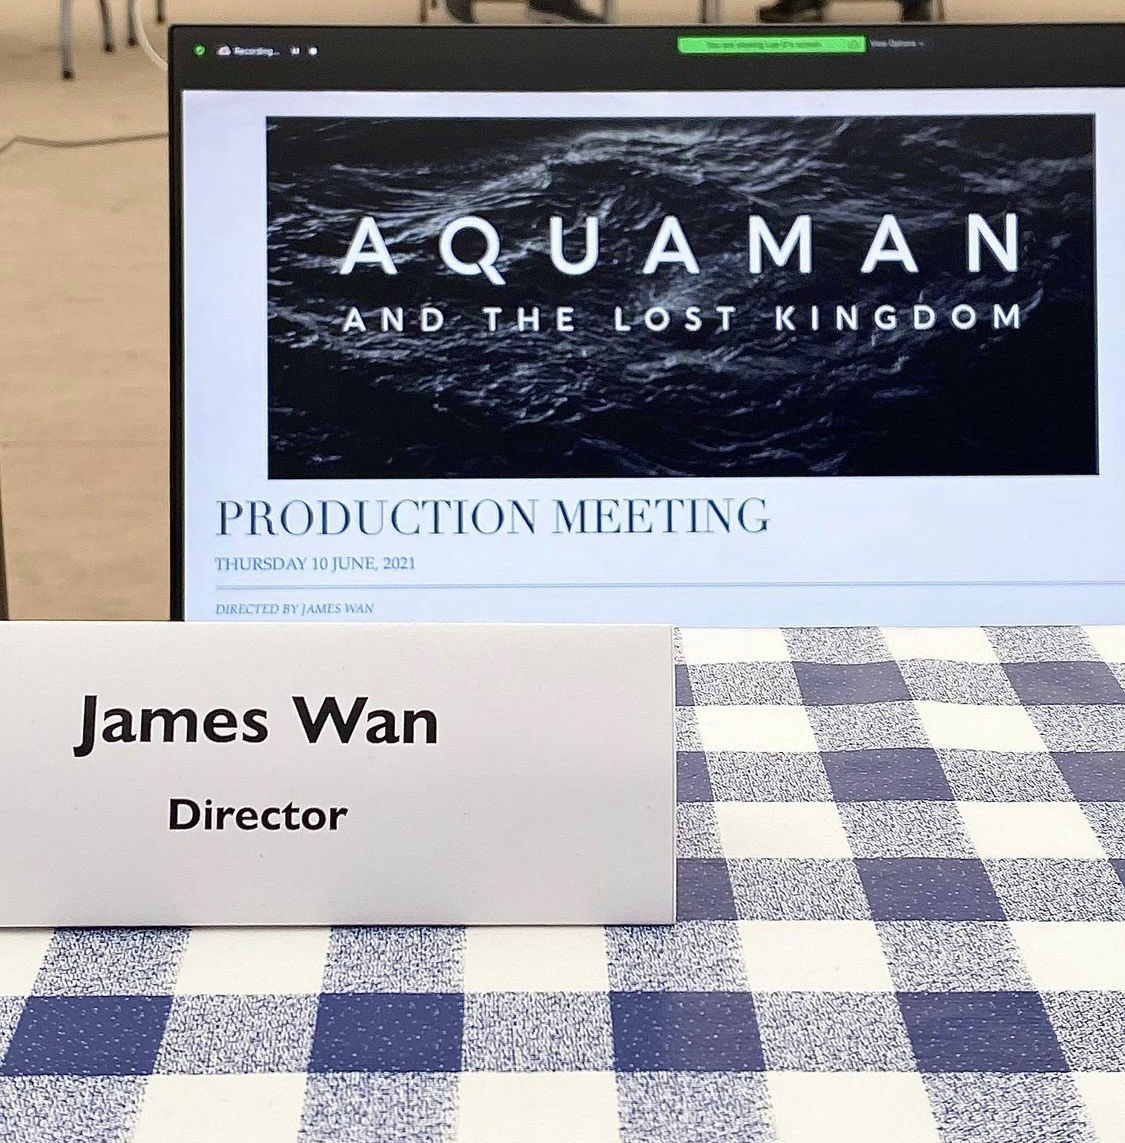 @DiscussingFilm's photo on Aquaman and the Lost Kingdom